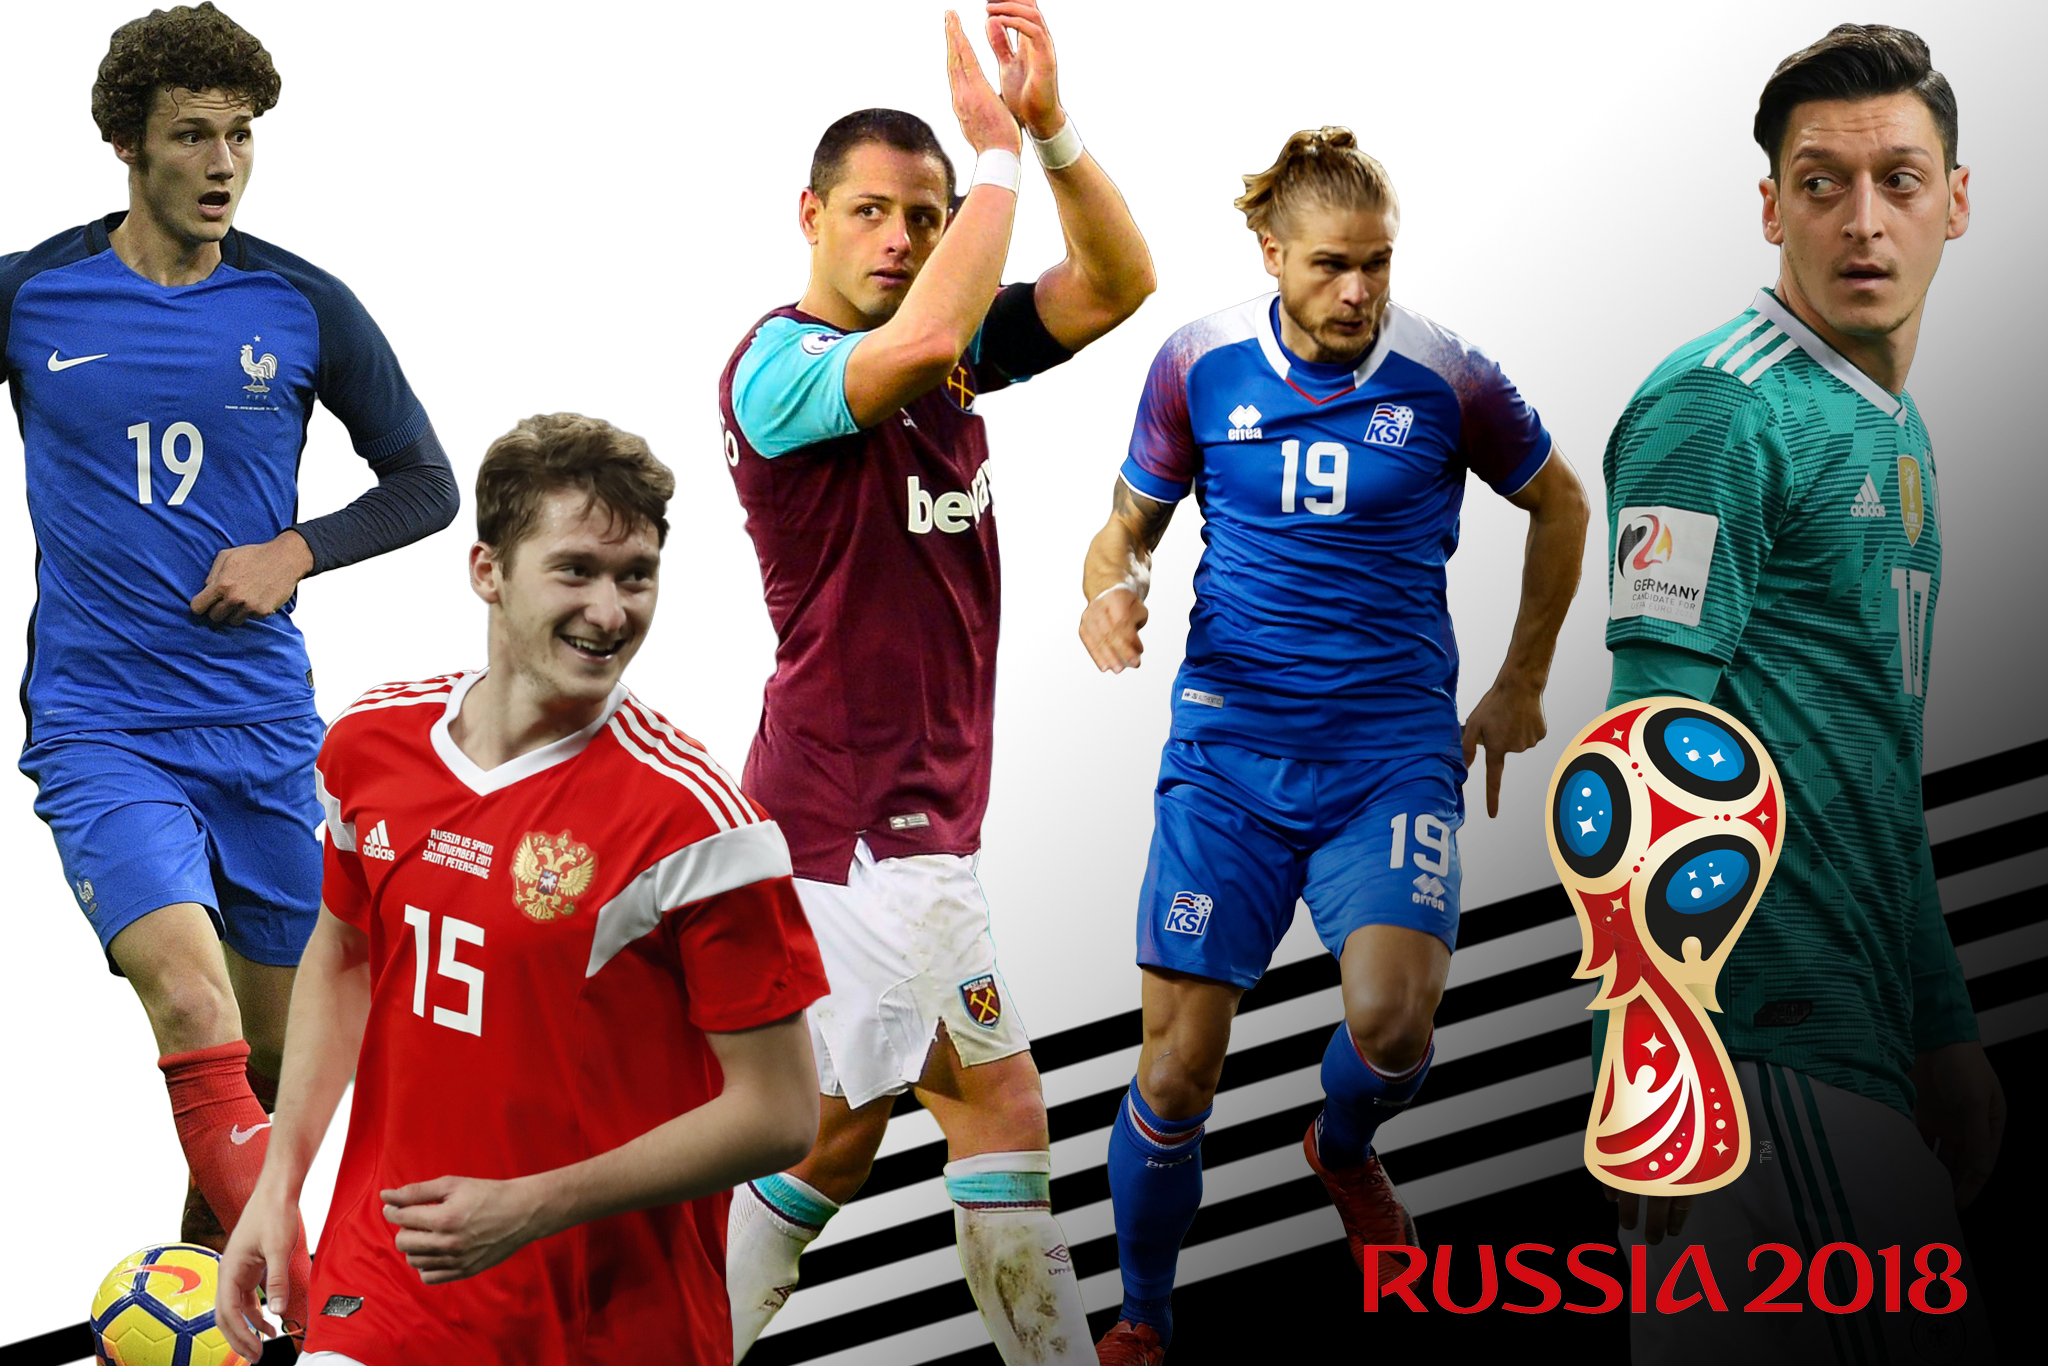 Players are vying to win the FIFA 2018 World Cup.